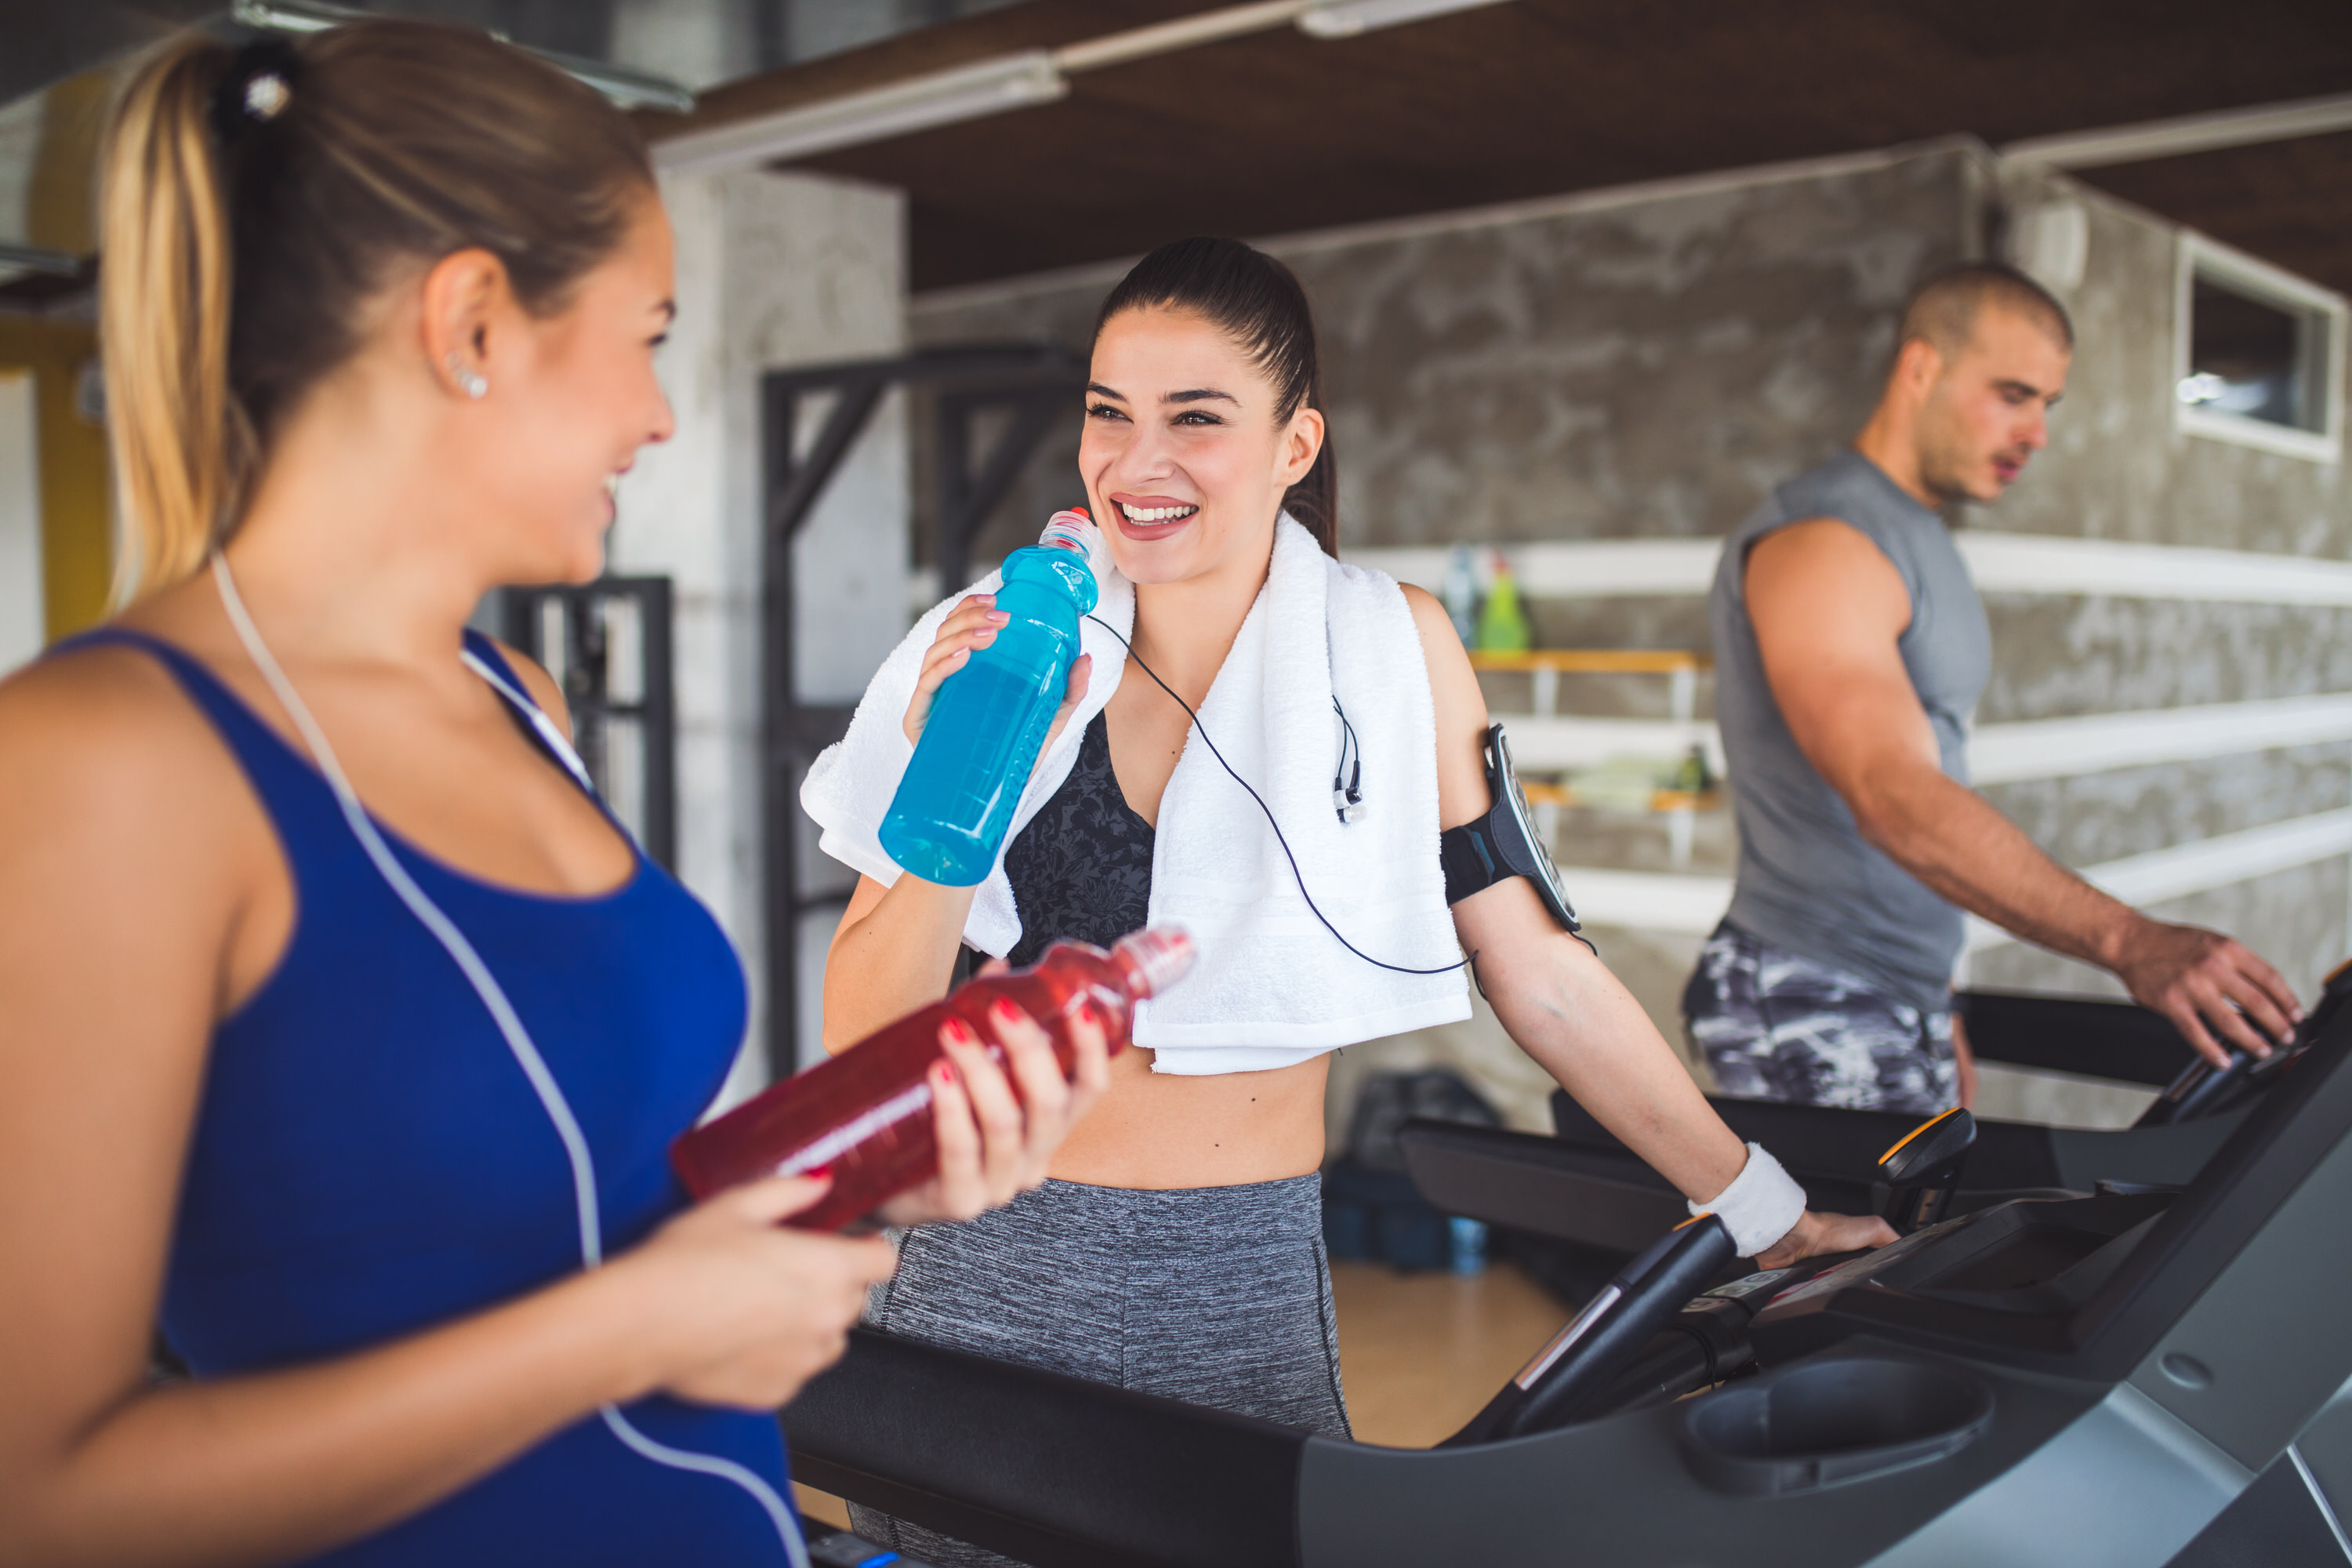 Young women drinking refreshment drink while exercising on treadmill at gym.